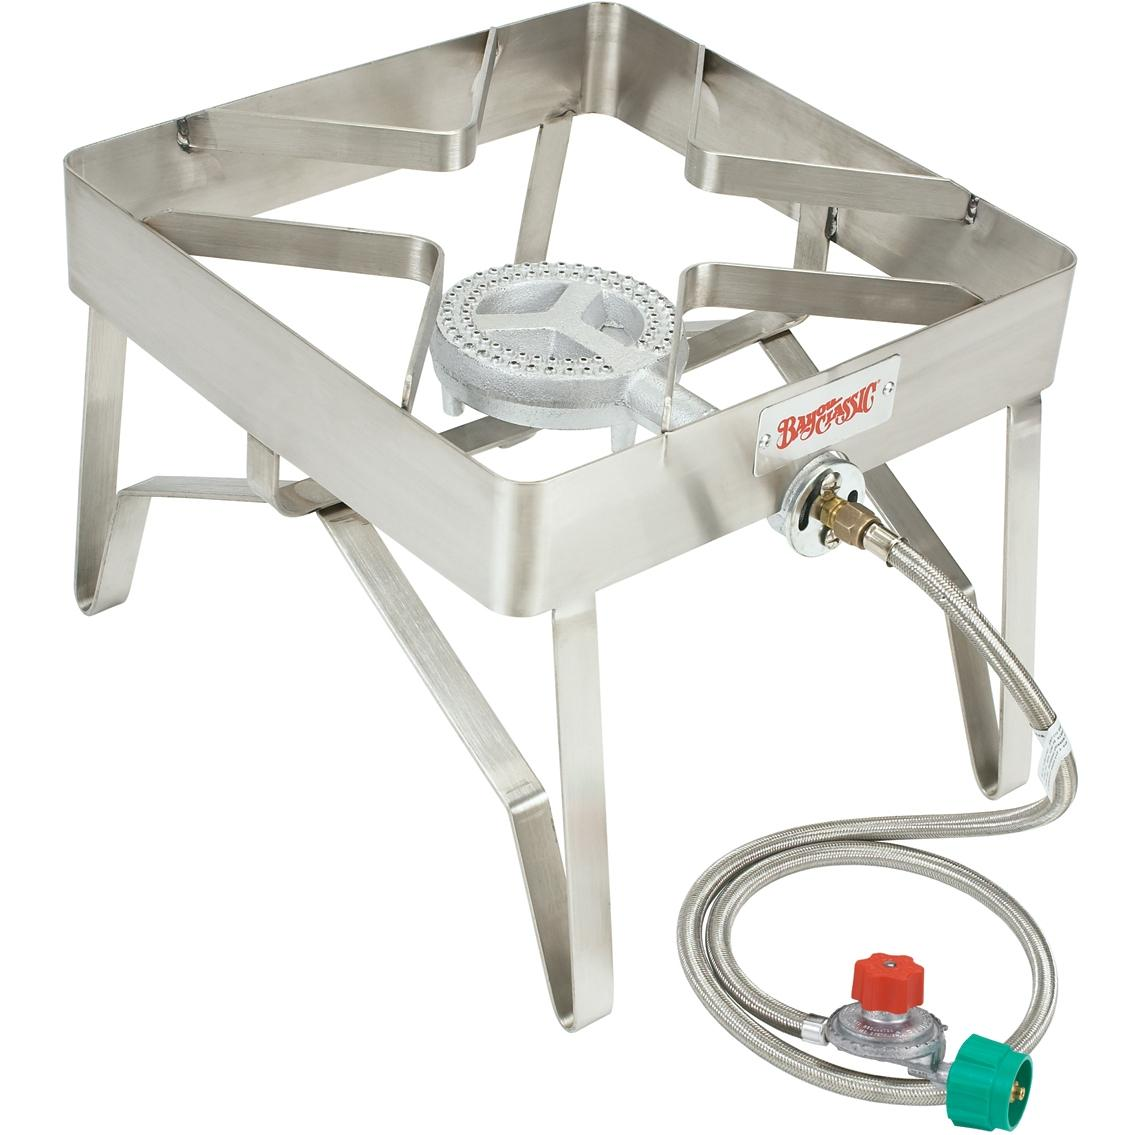 Bayou Classic Burners Stainless Steel Outdoor Stove With Low Pressure Gas Burner